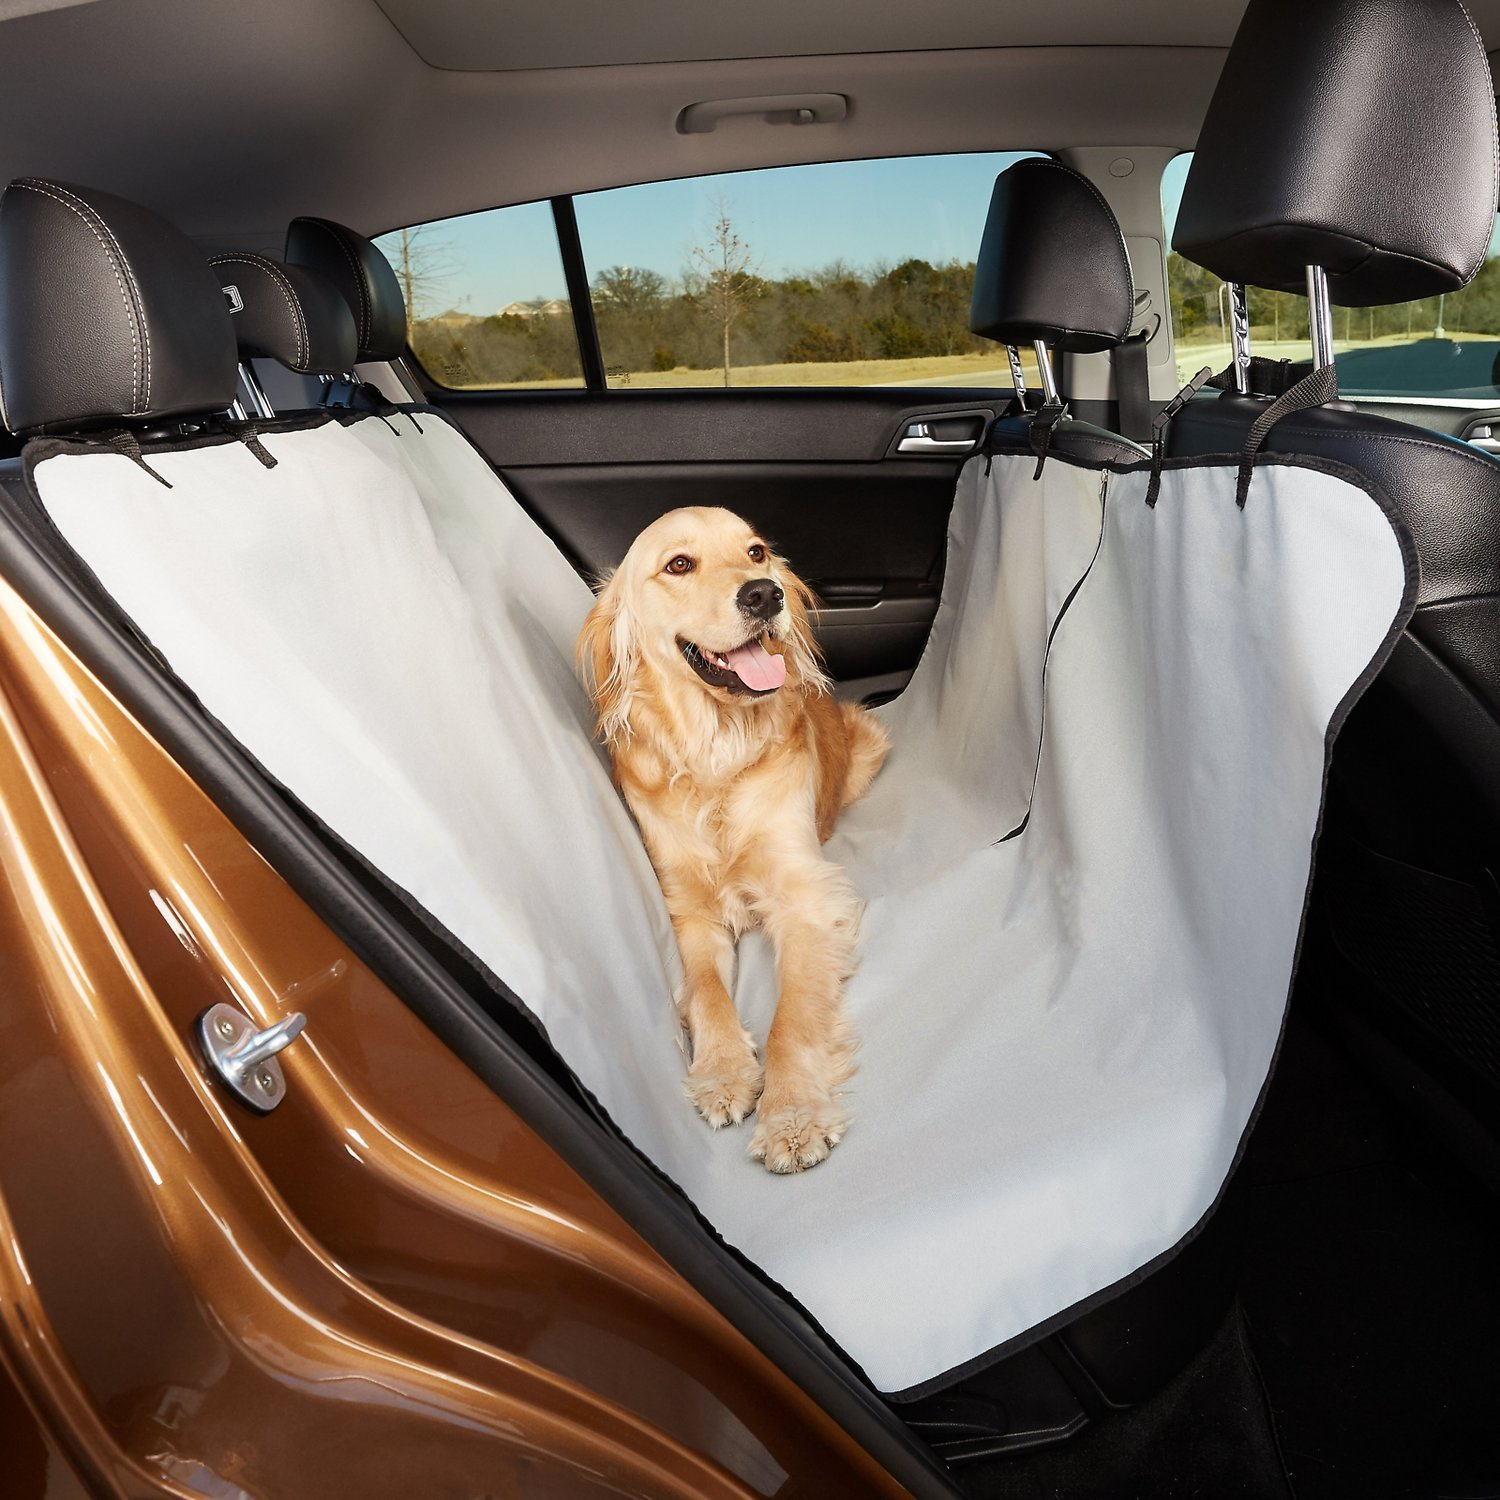 Animal Planet Dog Car Seat Cover 600d - Hammock Seat Cover for Dogs - Universal/Non-slip/Water-Resistant (Grey) by Animal Planet (Image #2)